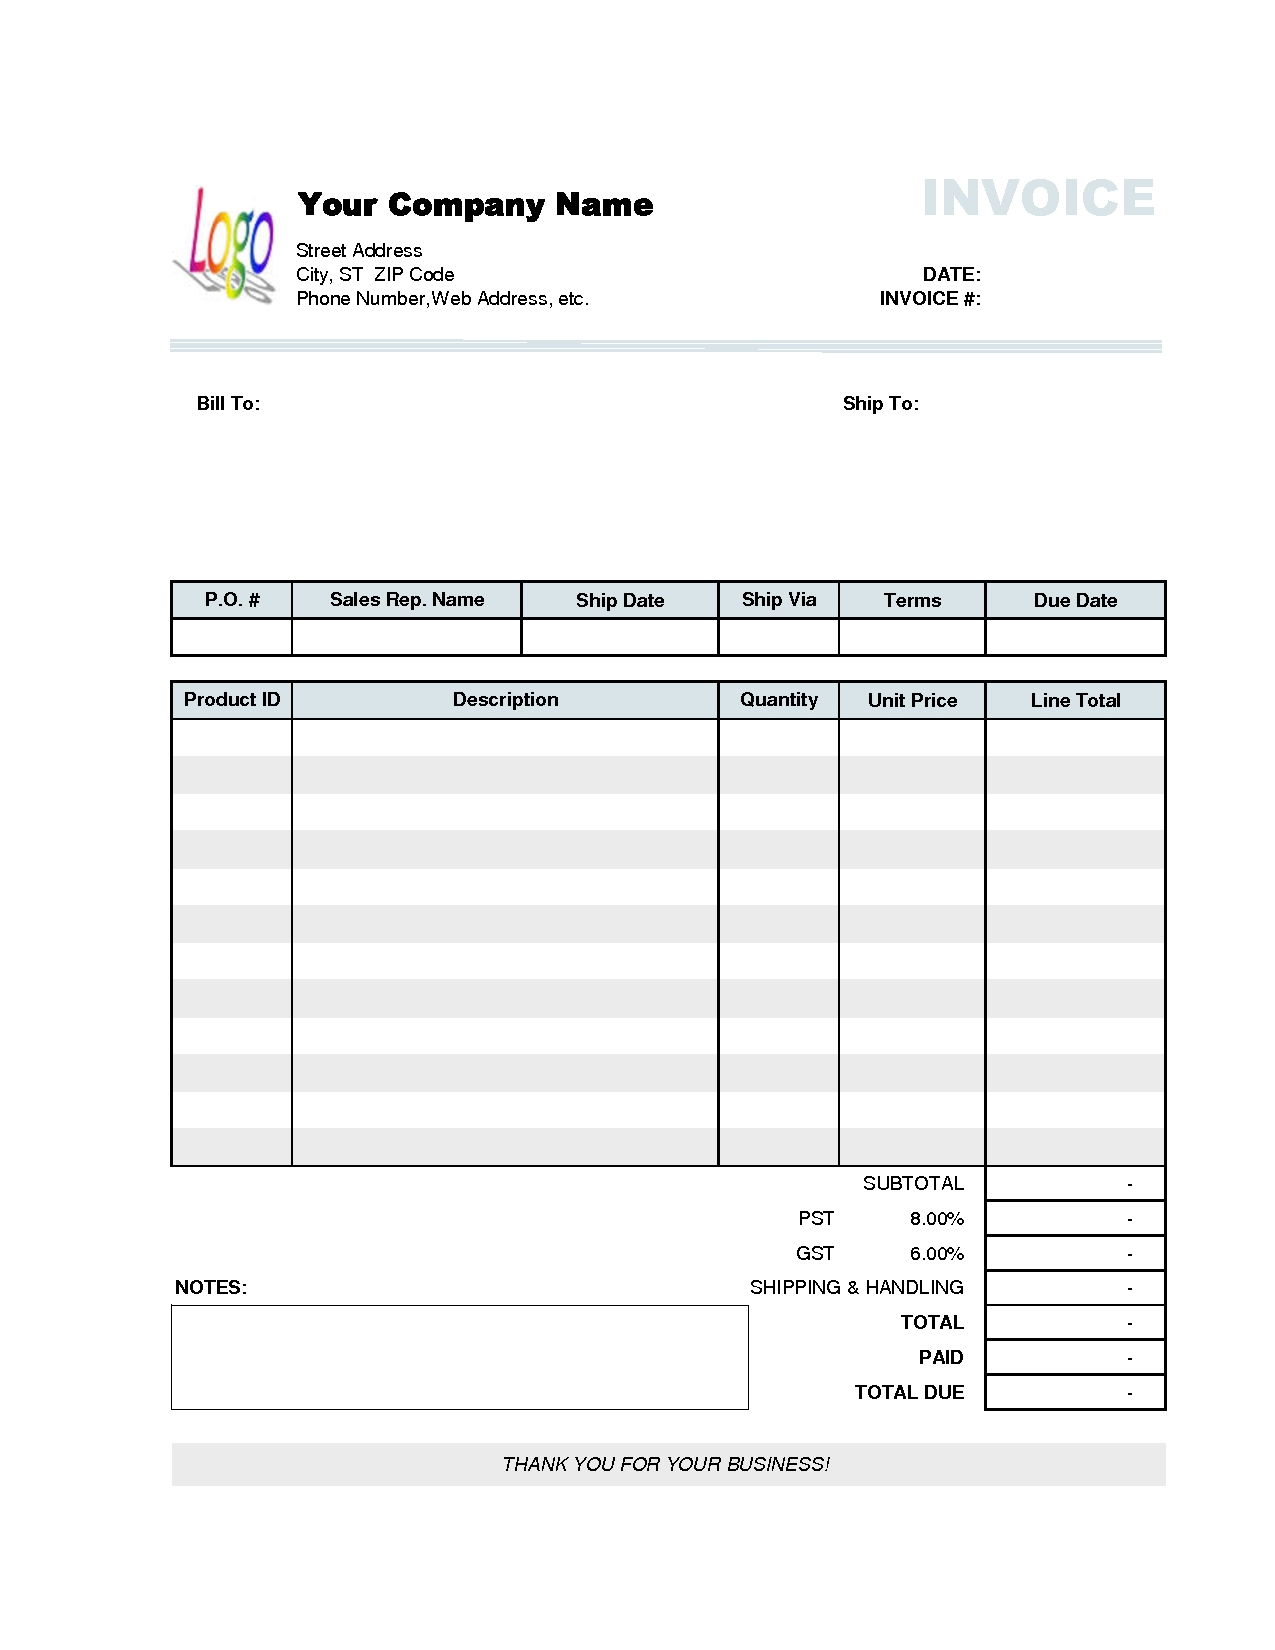 Company Invoice Forms